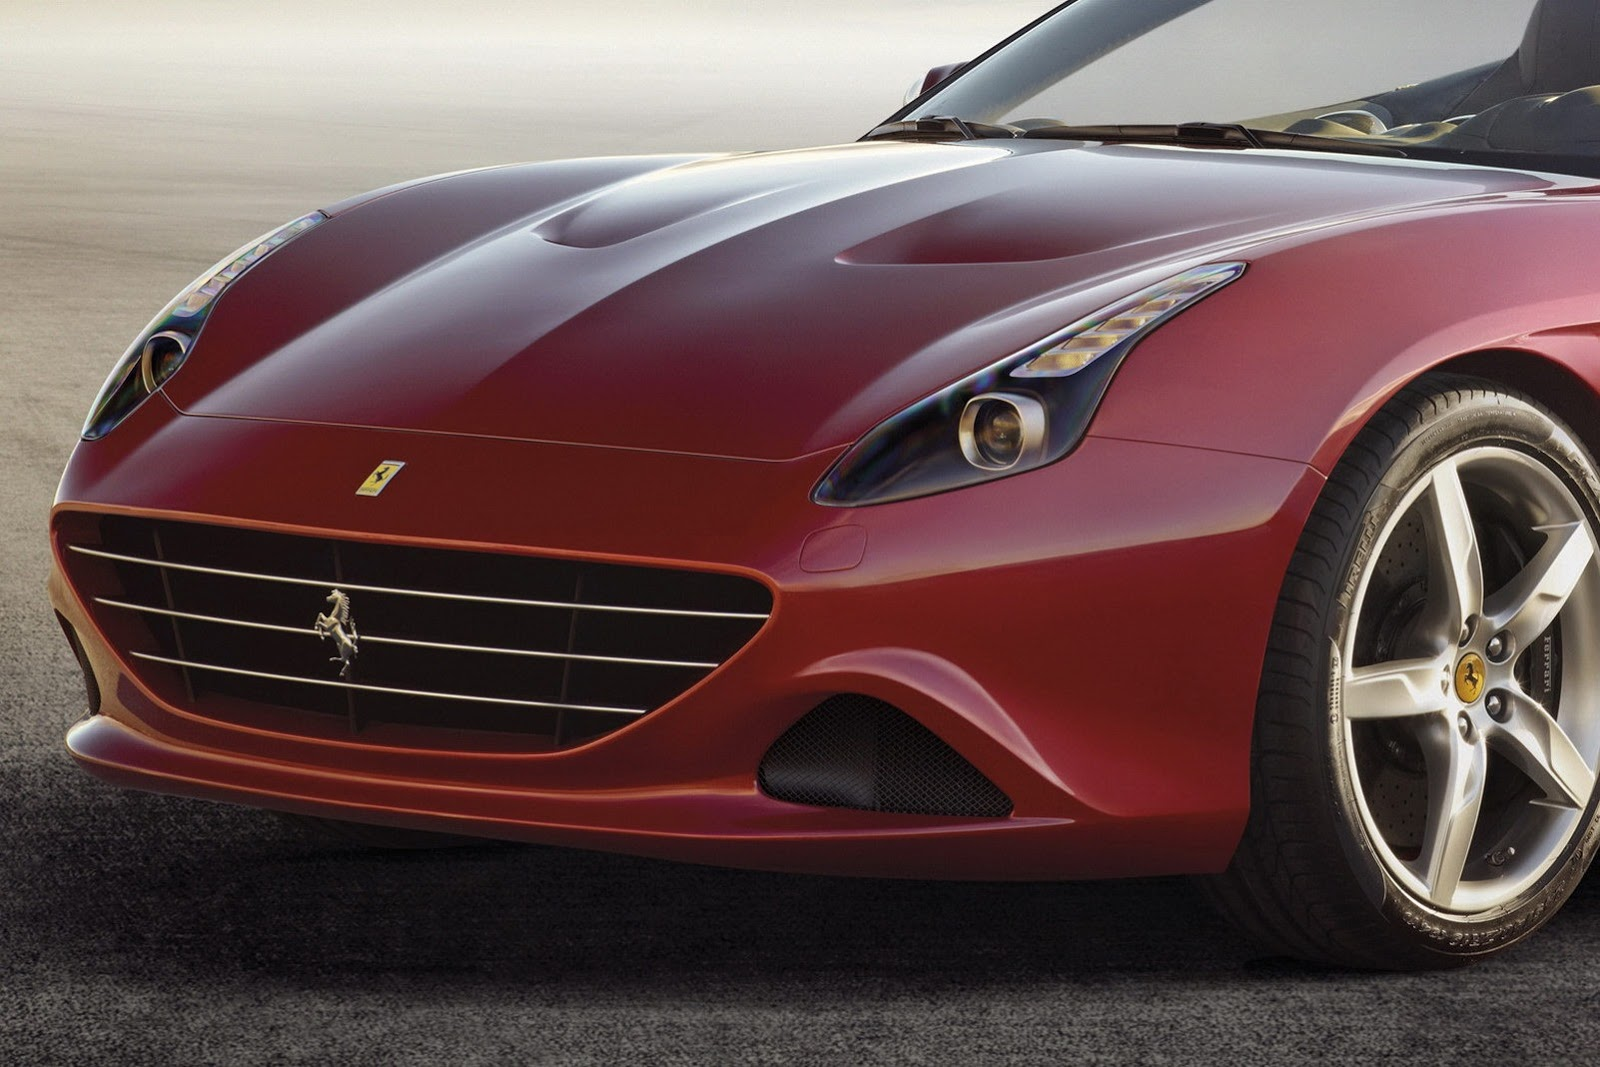 ferrari california t 2014 fiche technique prix sortie. Black Bedroom Furniture Sets. Home Design Ideas